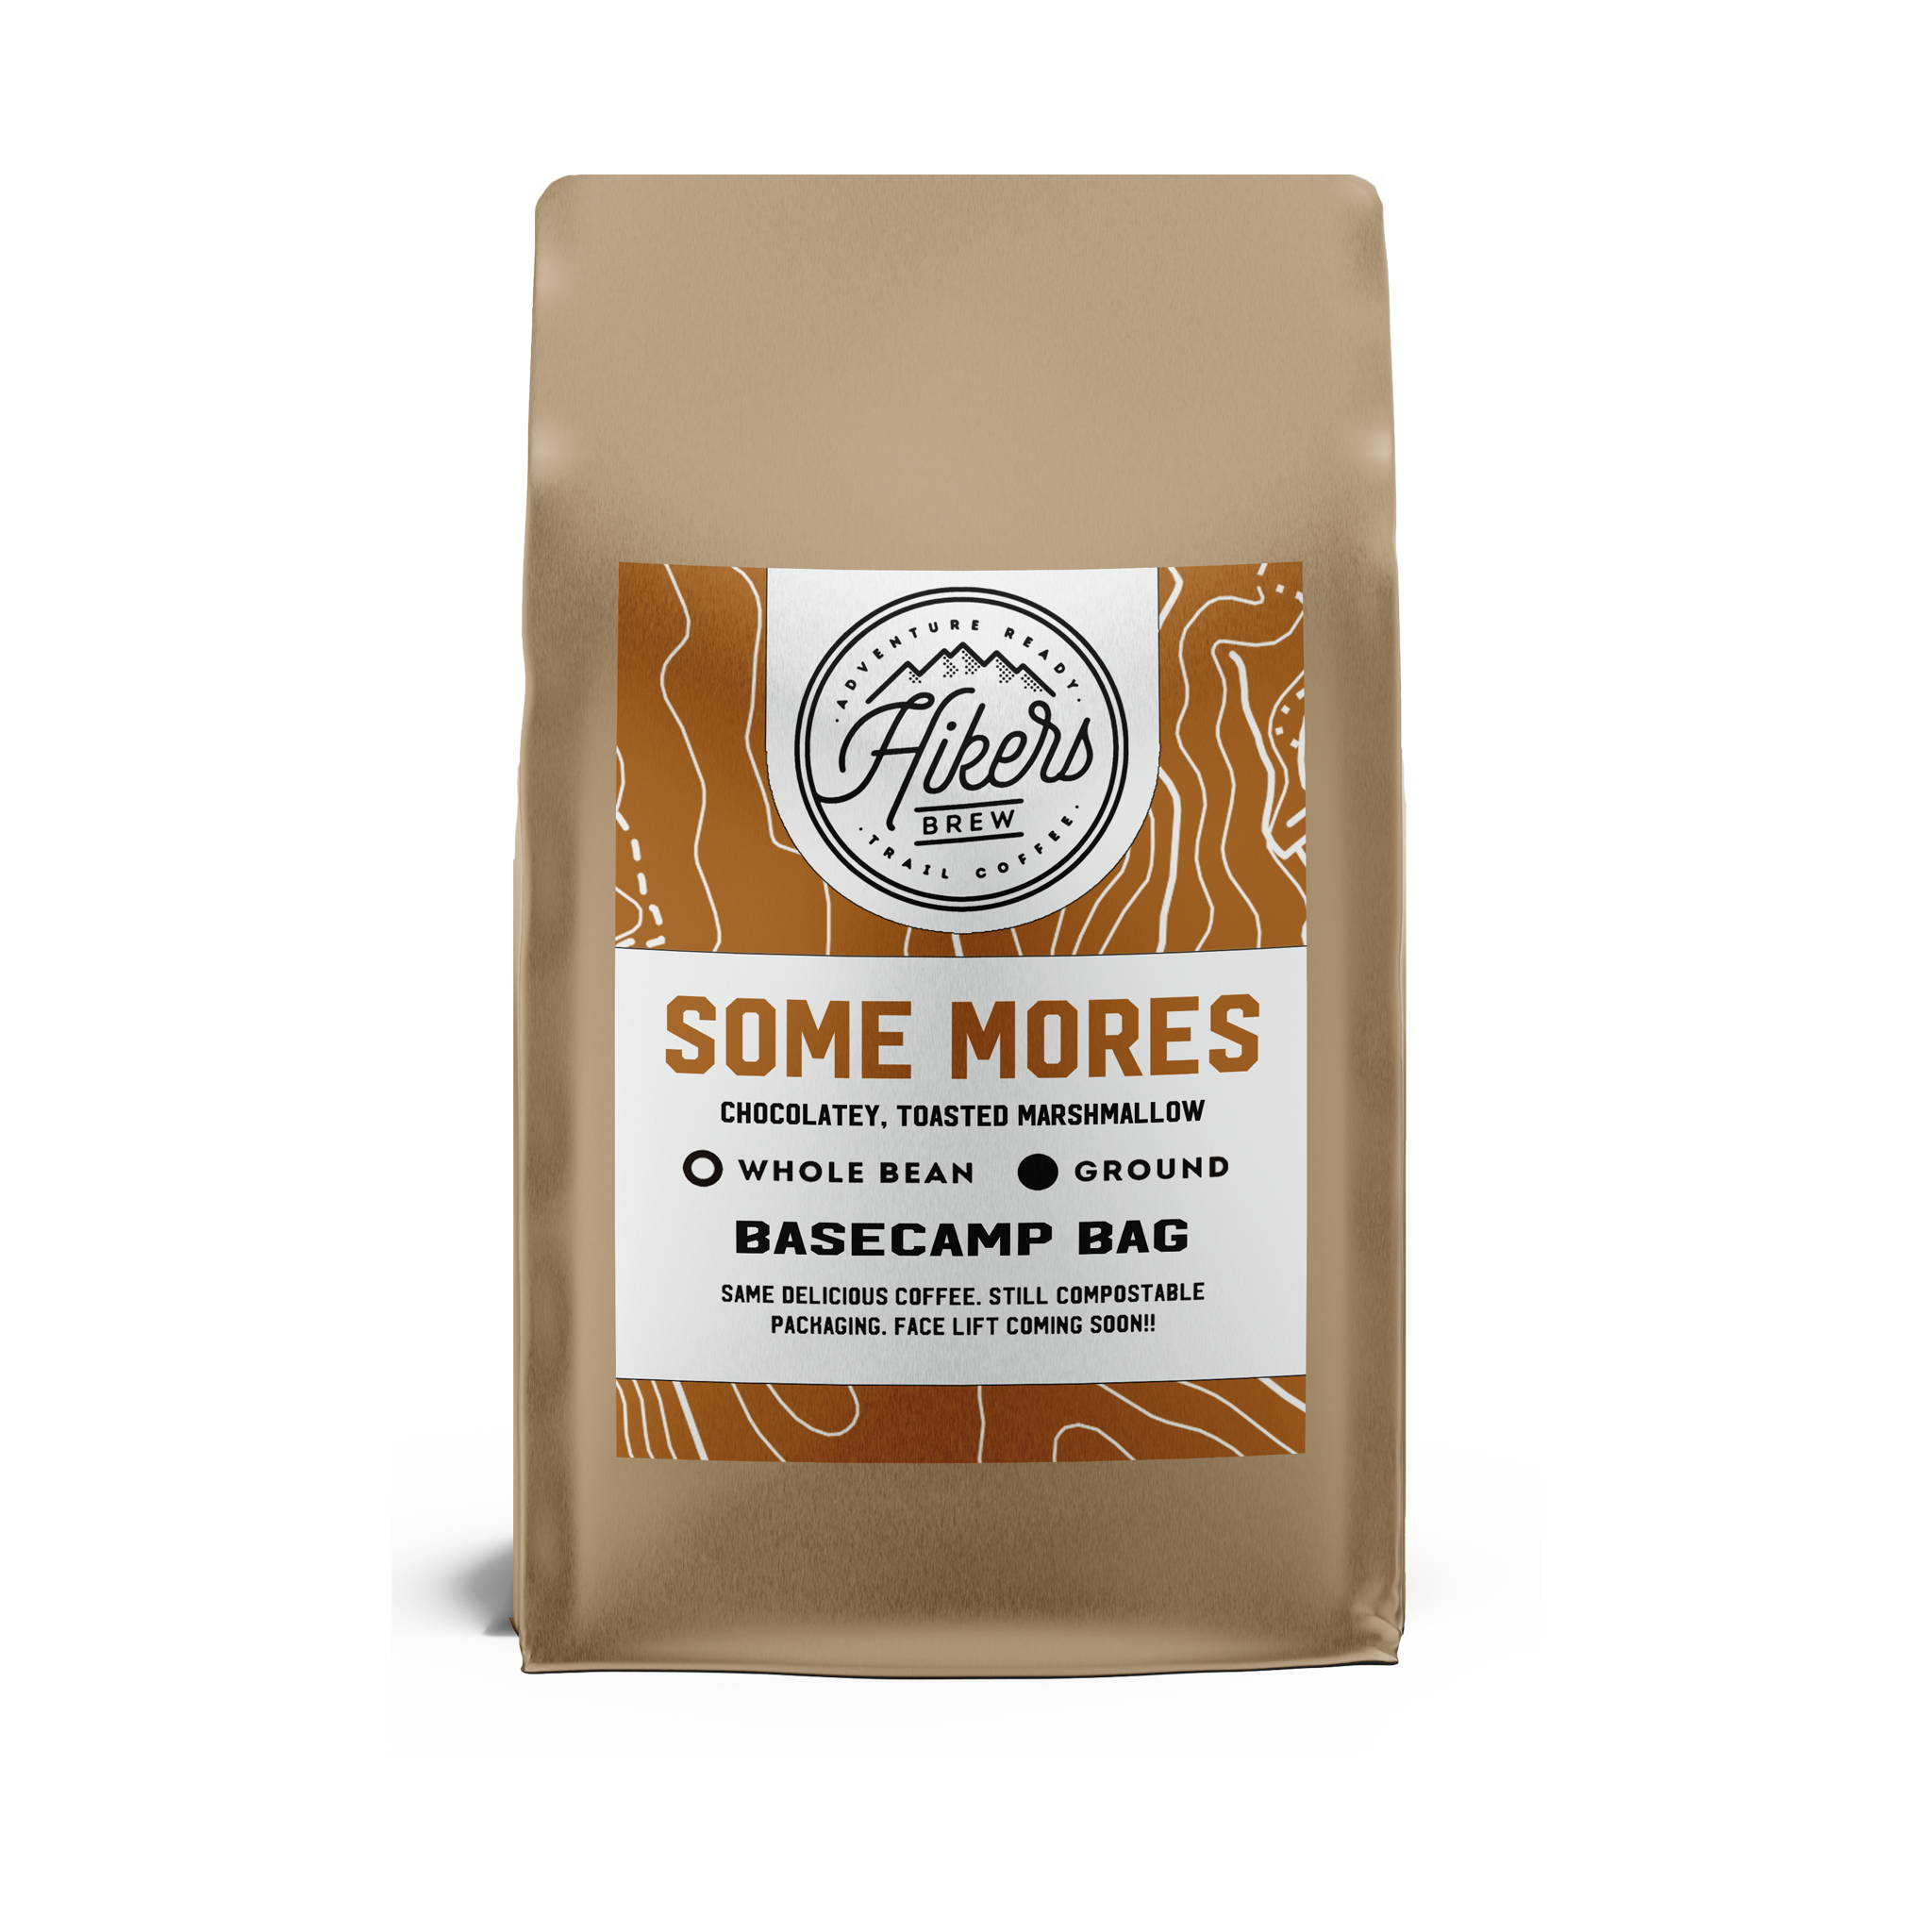 Some Mores - S'mores Flavored Coffee - 12 oz.